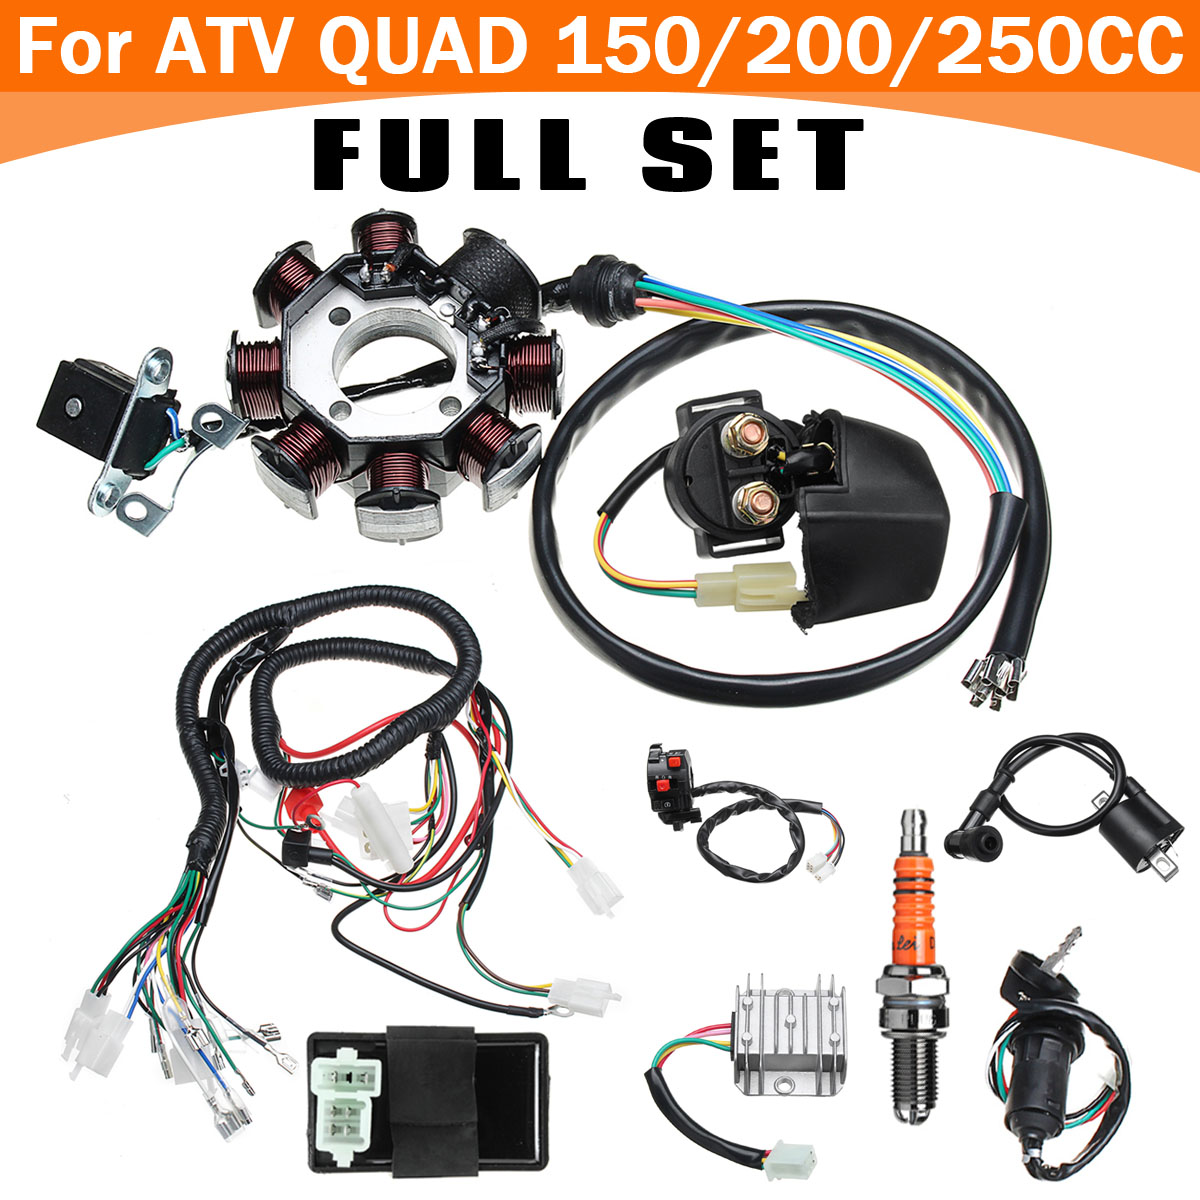 Full Electric Cdi Coil Wire Wiring Harness Stator Loom For Atv Quad China Made Detail Image